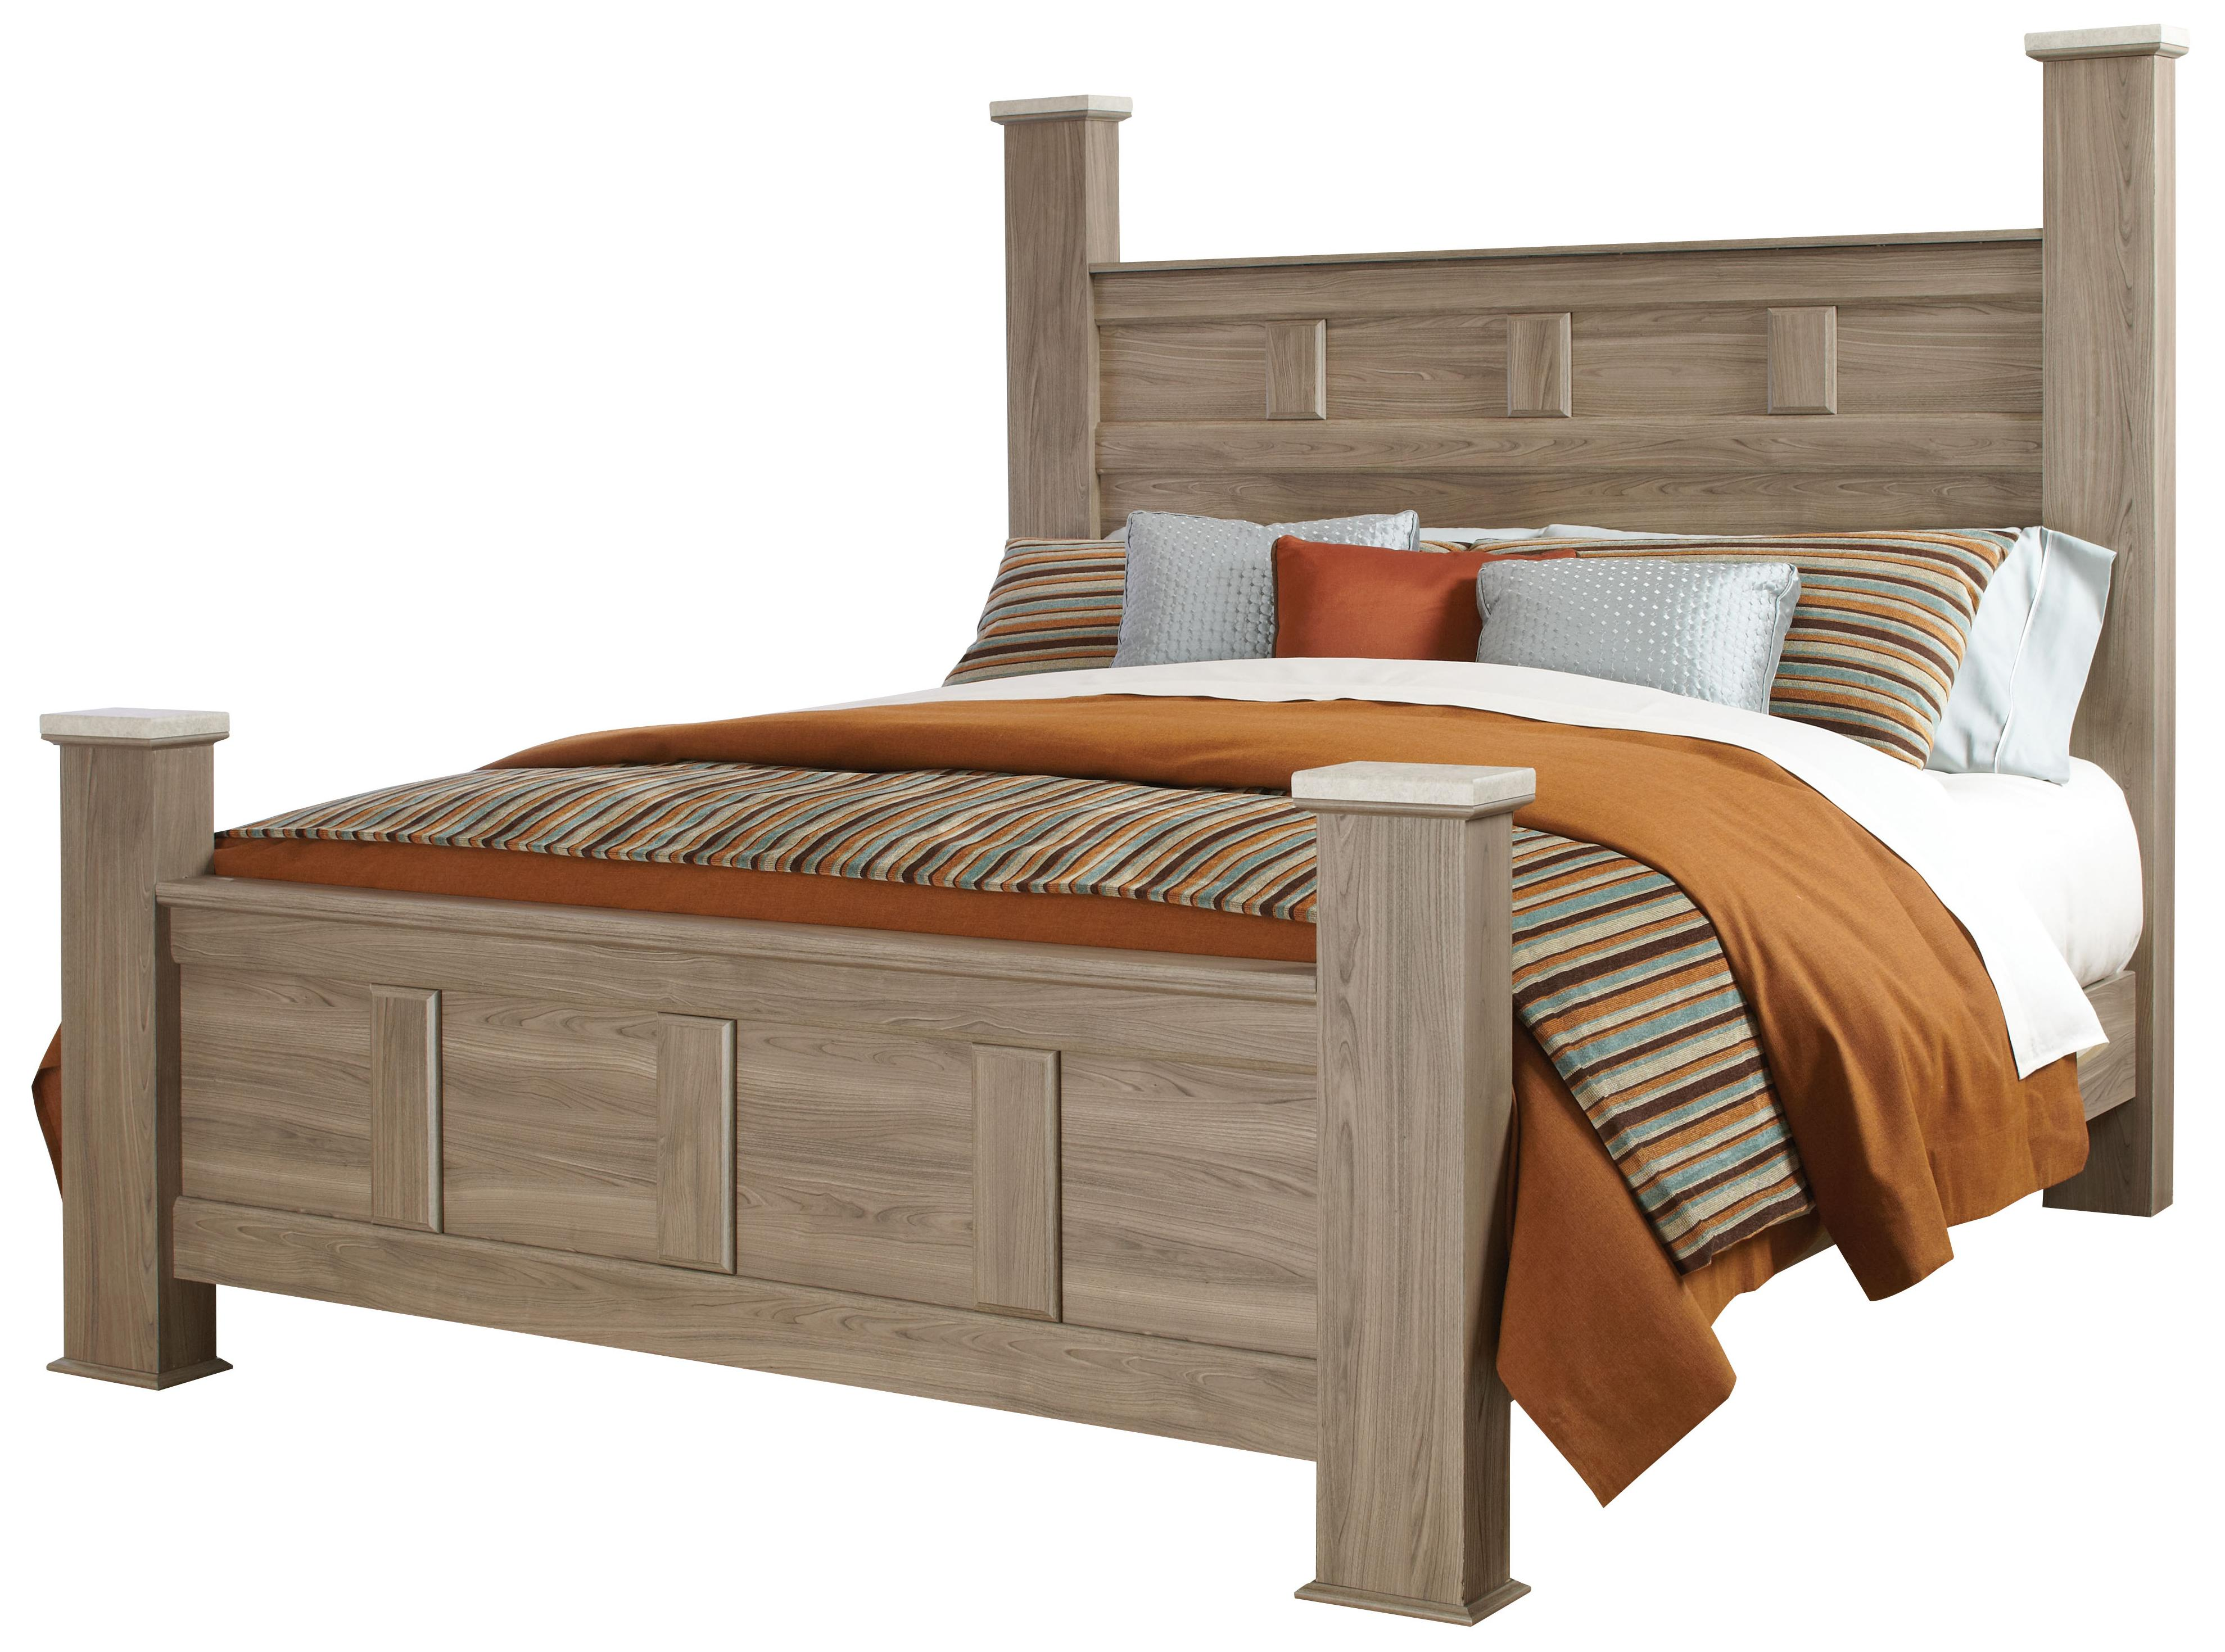 Standard Furniture Stonehill Queen Poster Bed - Item Number: 69402+12+10+2069402